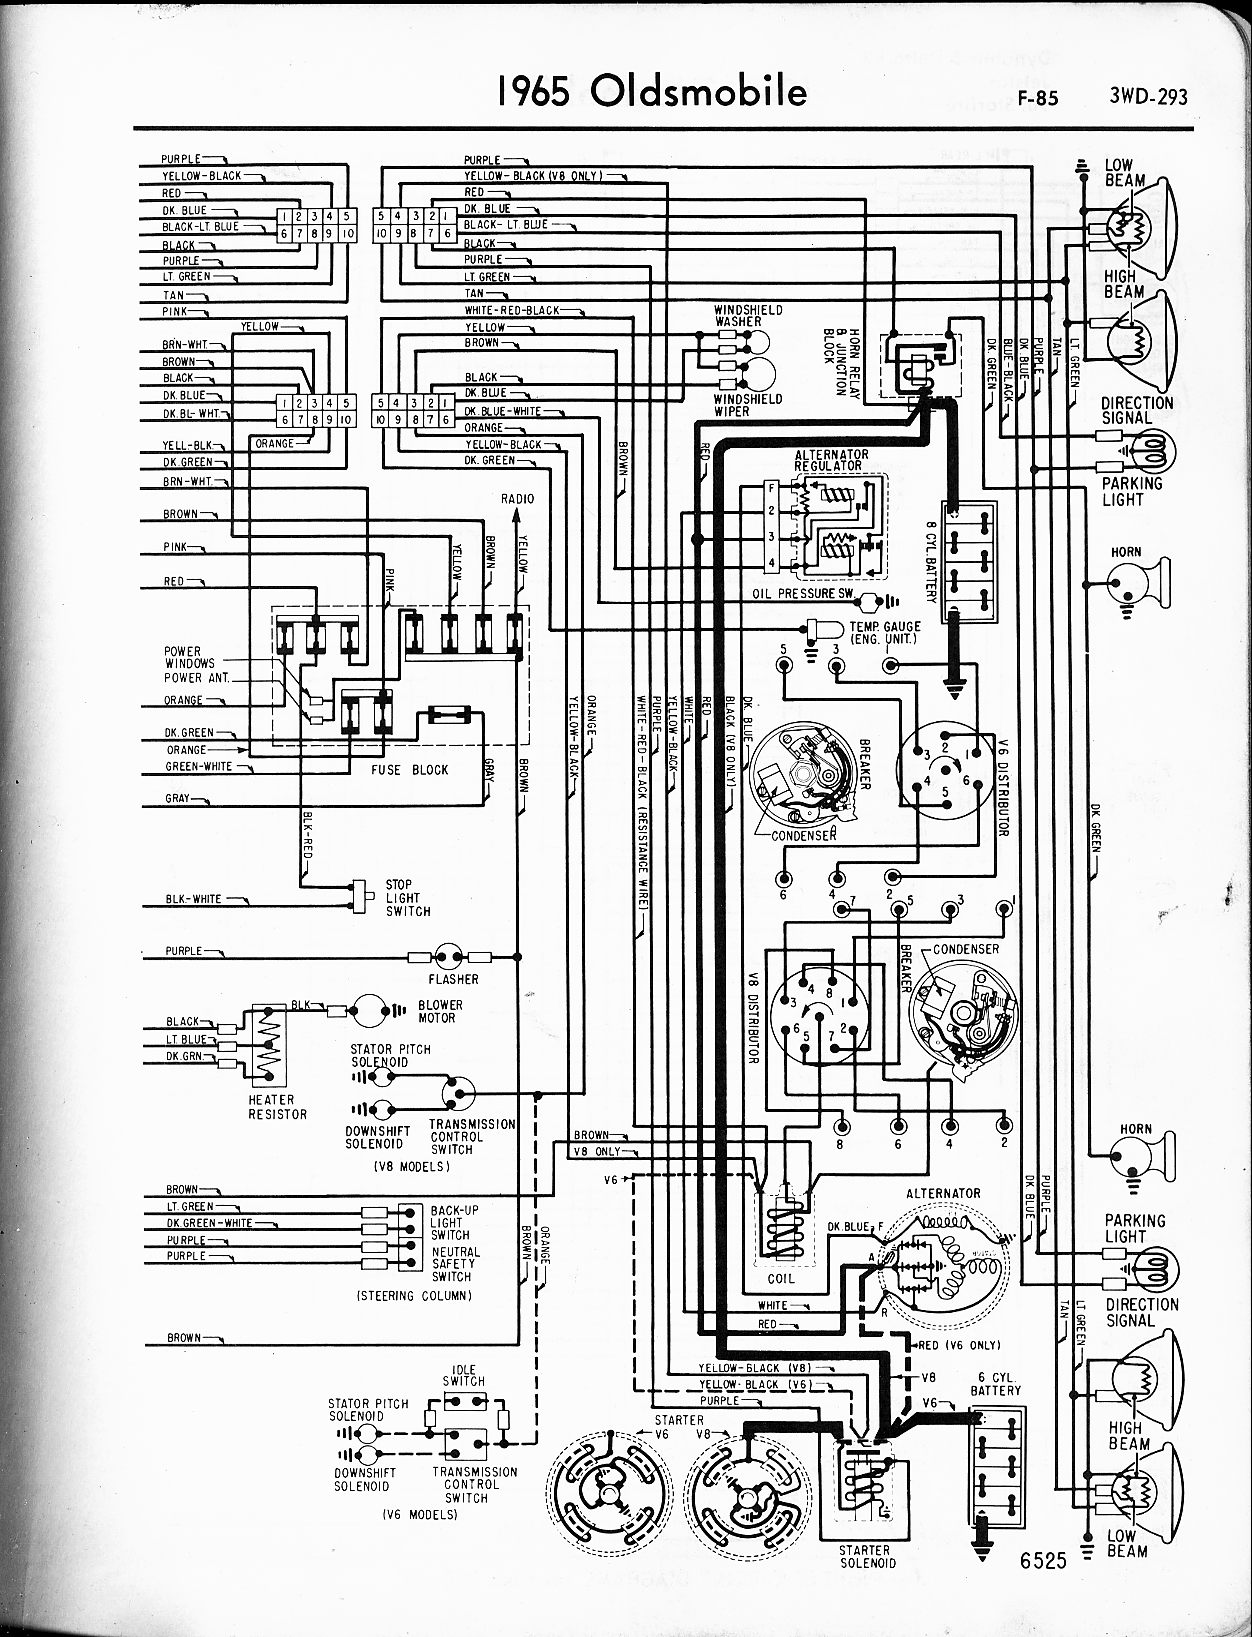 82 oldsmobile 98 regency wiring diagram oldsmobile wiring diagrams - the old car manual project 82 corvette fuel gauge wiring diagram